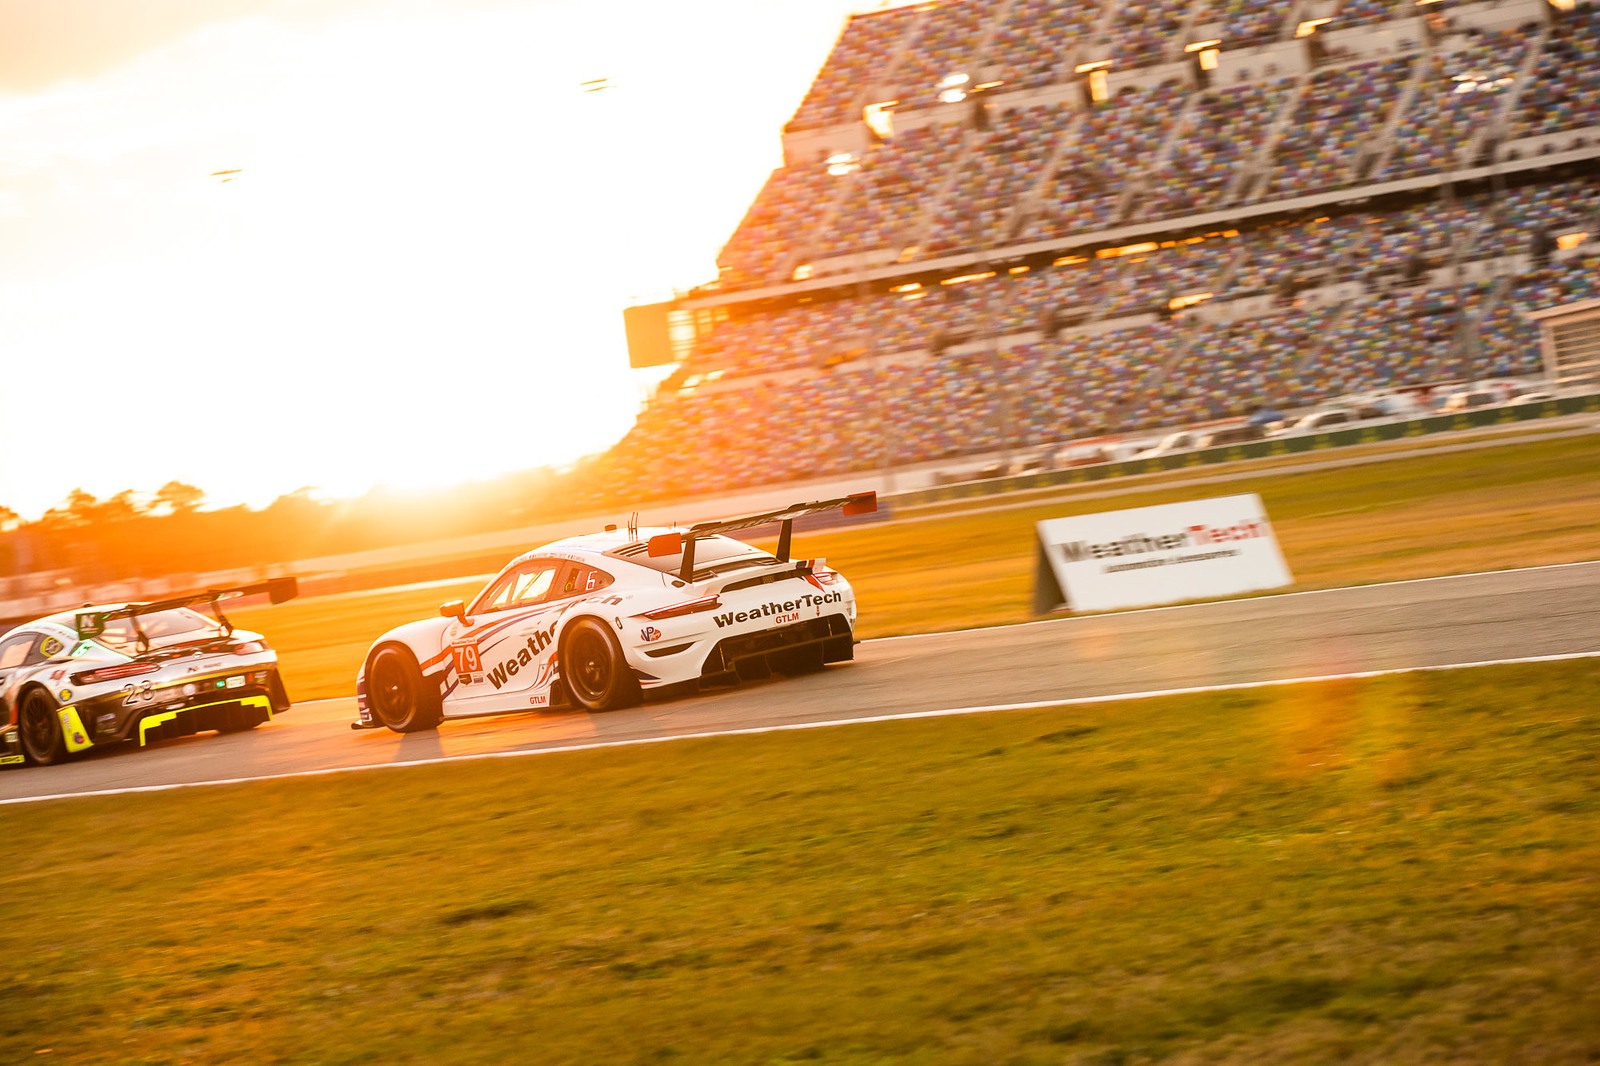 Porsche racing at sunset.